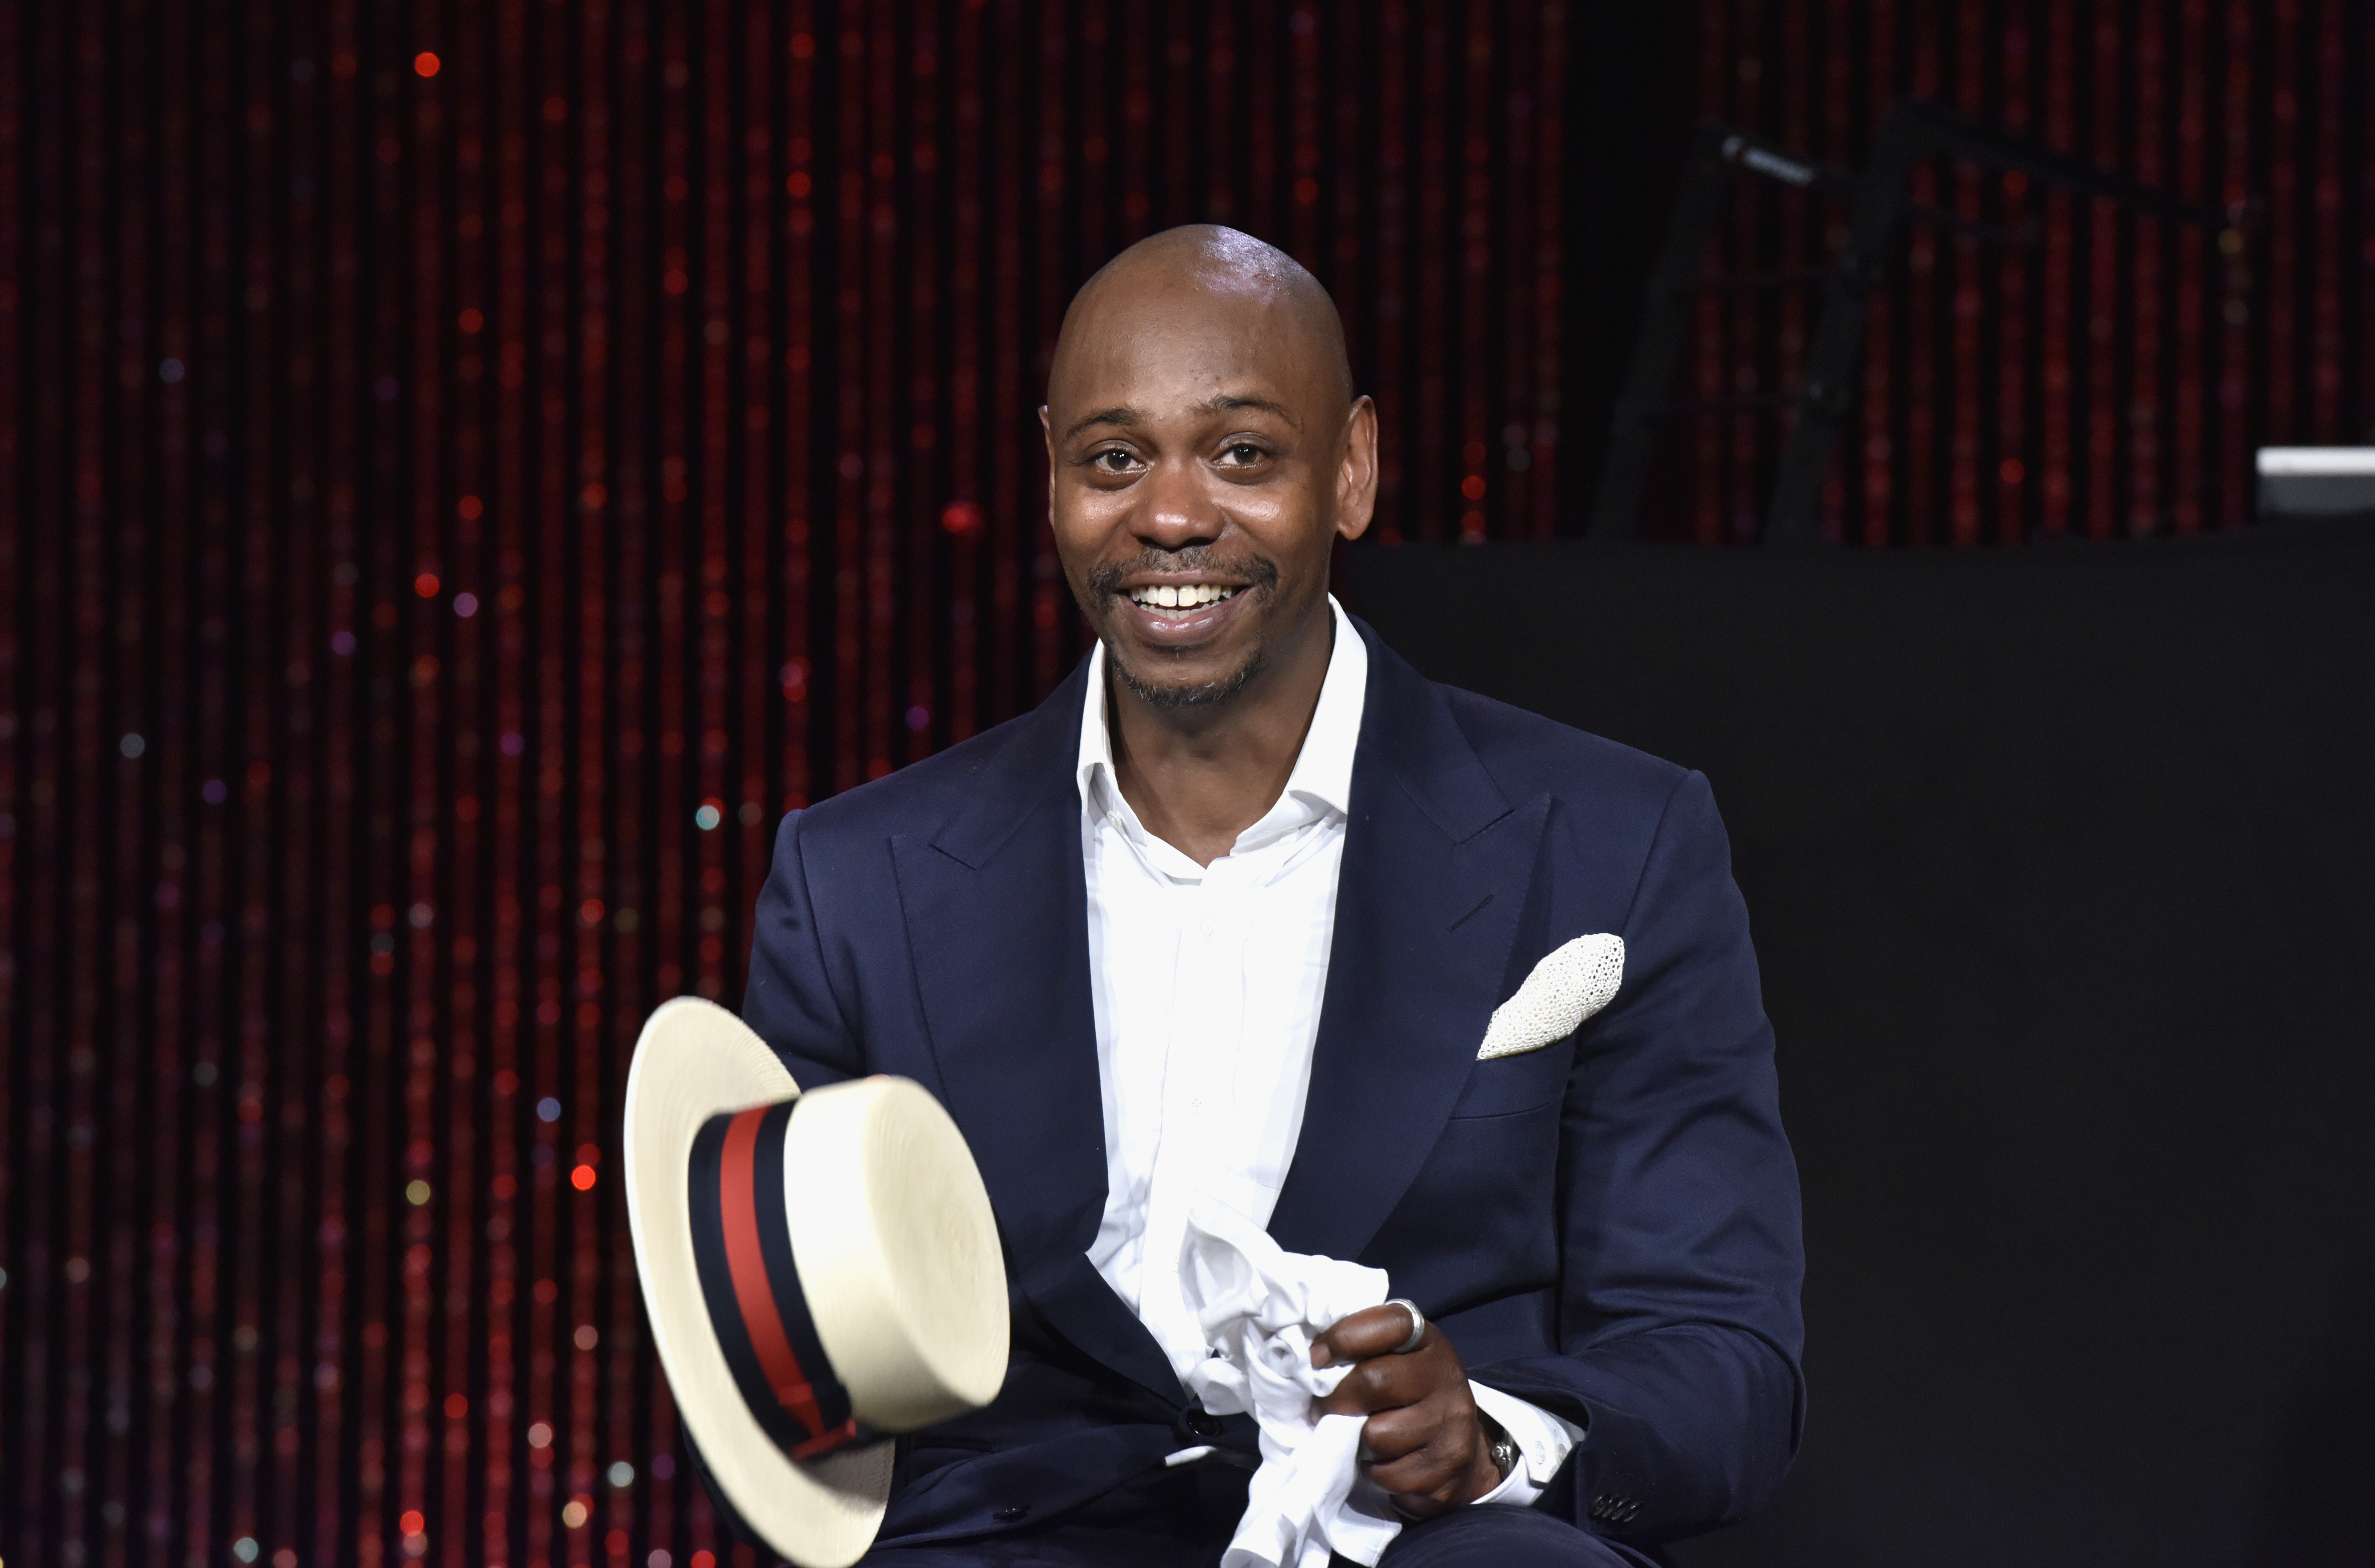 Dave Chappelle speaks on stage as RUSH Philanthropic Arts Foundation Celebrates its 20th Anniversary at Fairview Farms on July 18, 2015 in Water Mill, New York.